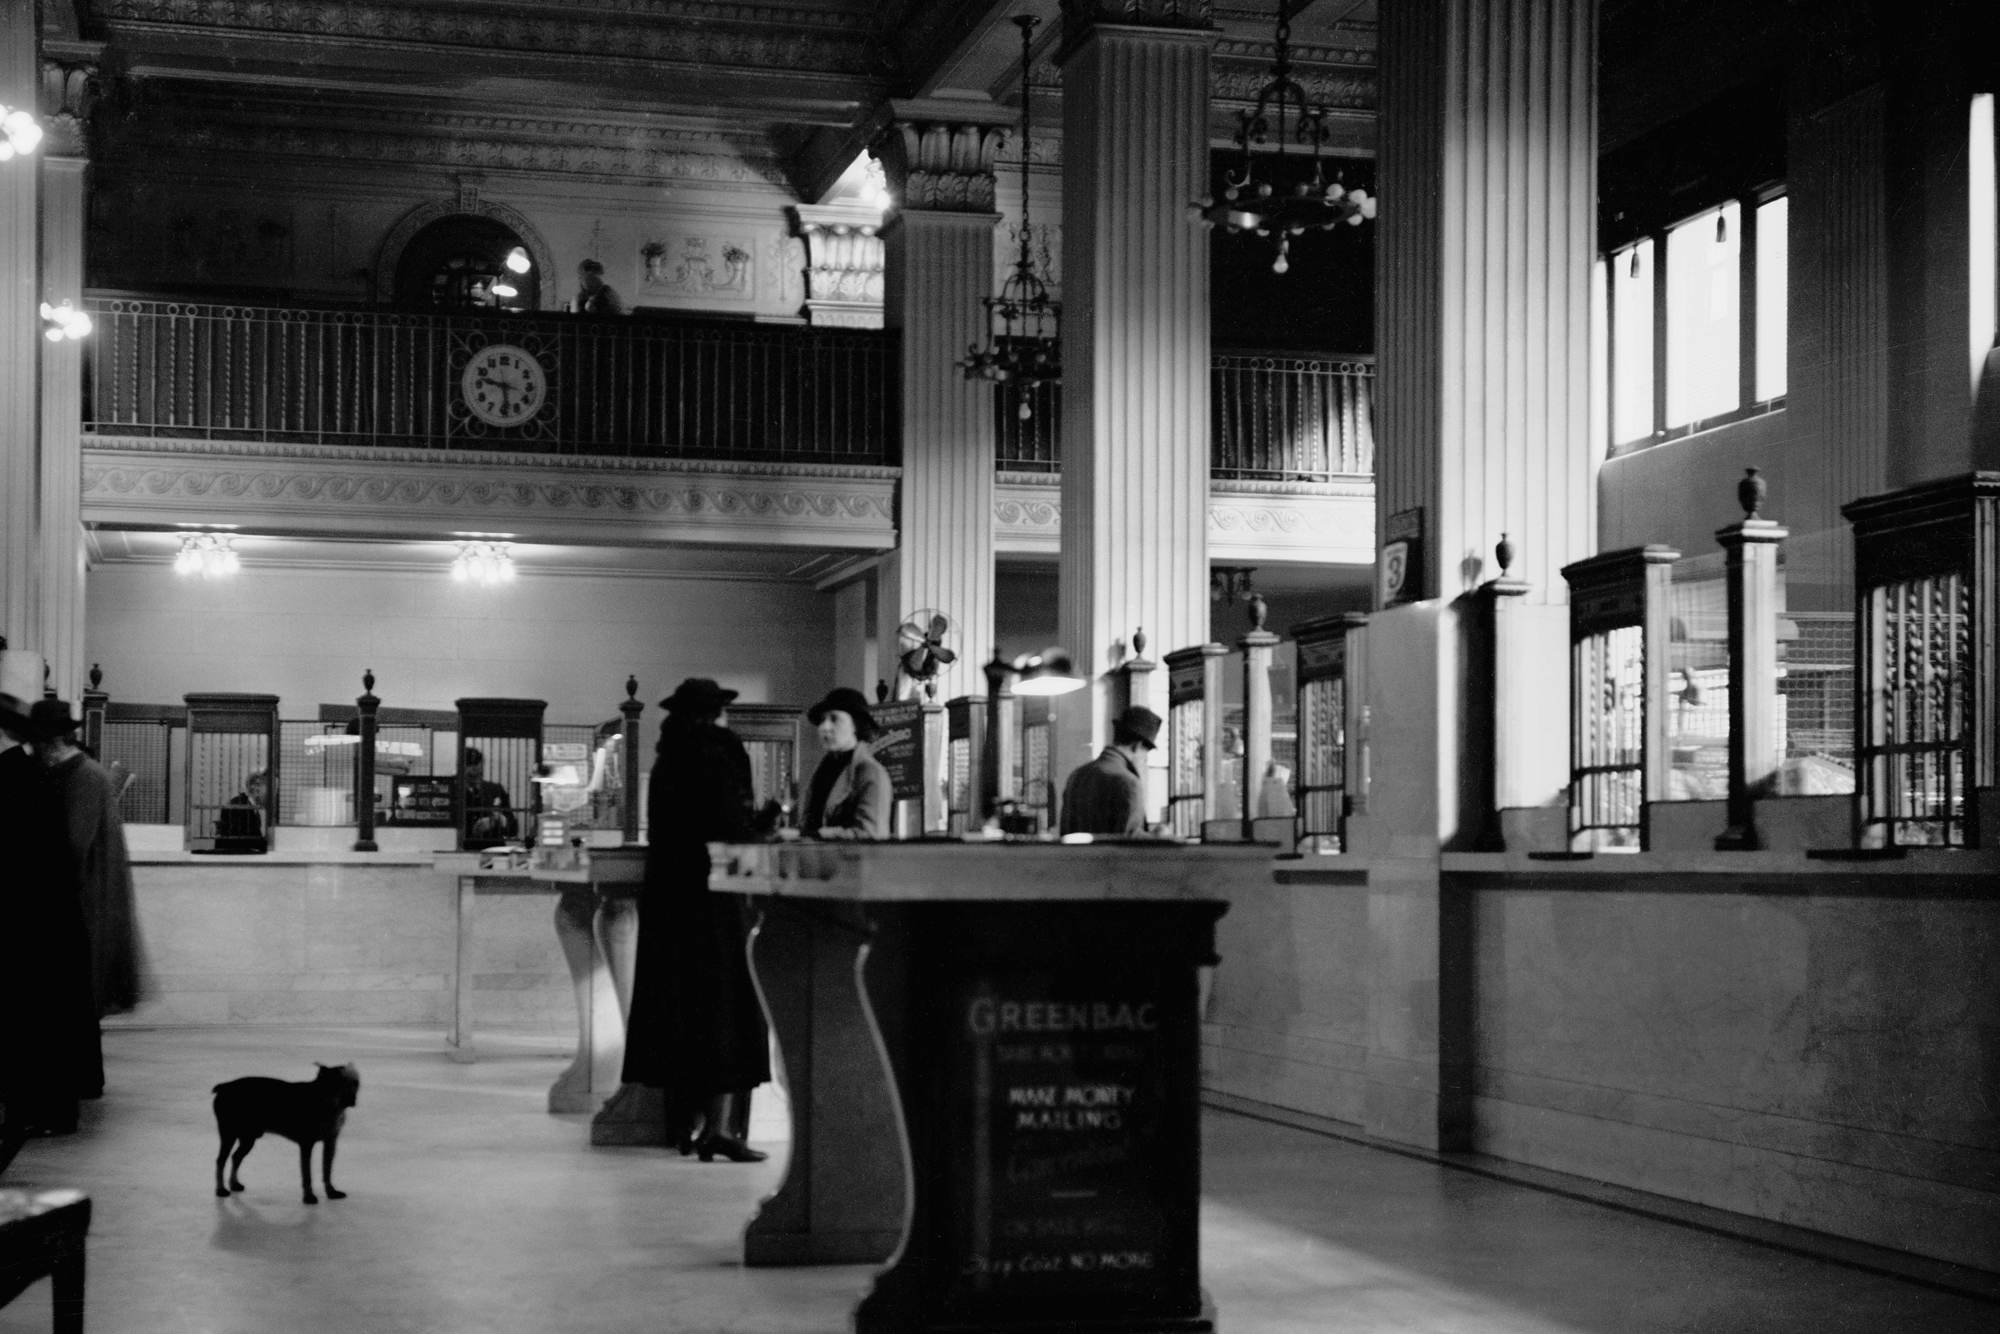 Wall 14_24x36_1936 First National Bank Interior with dog.jpg